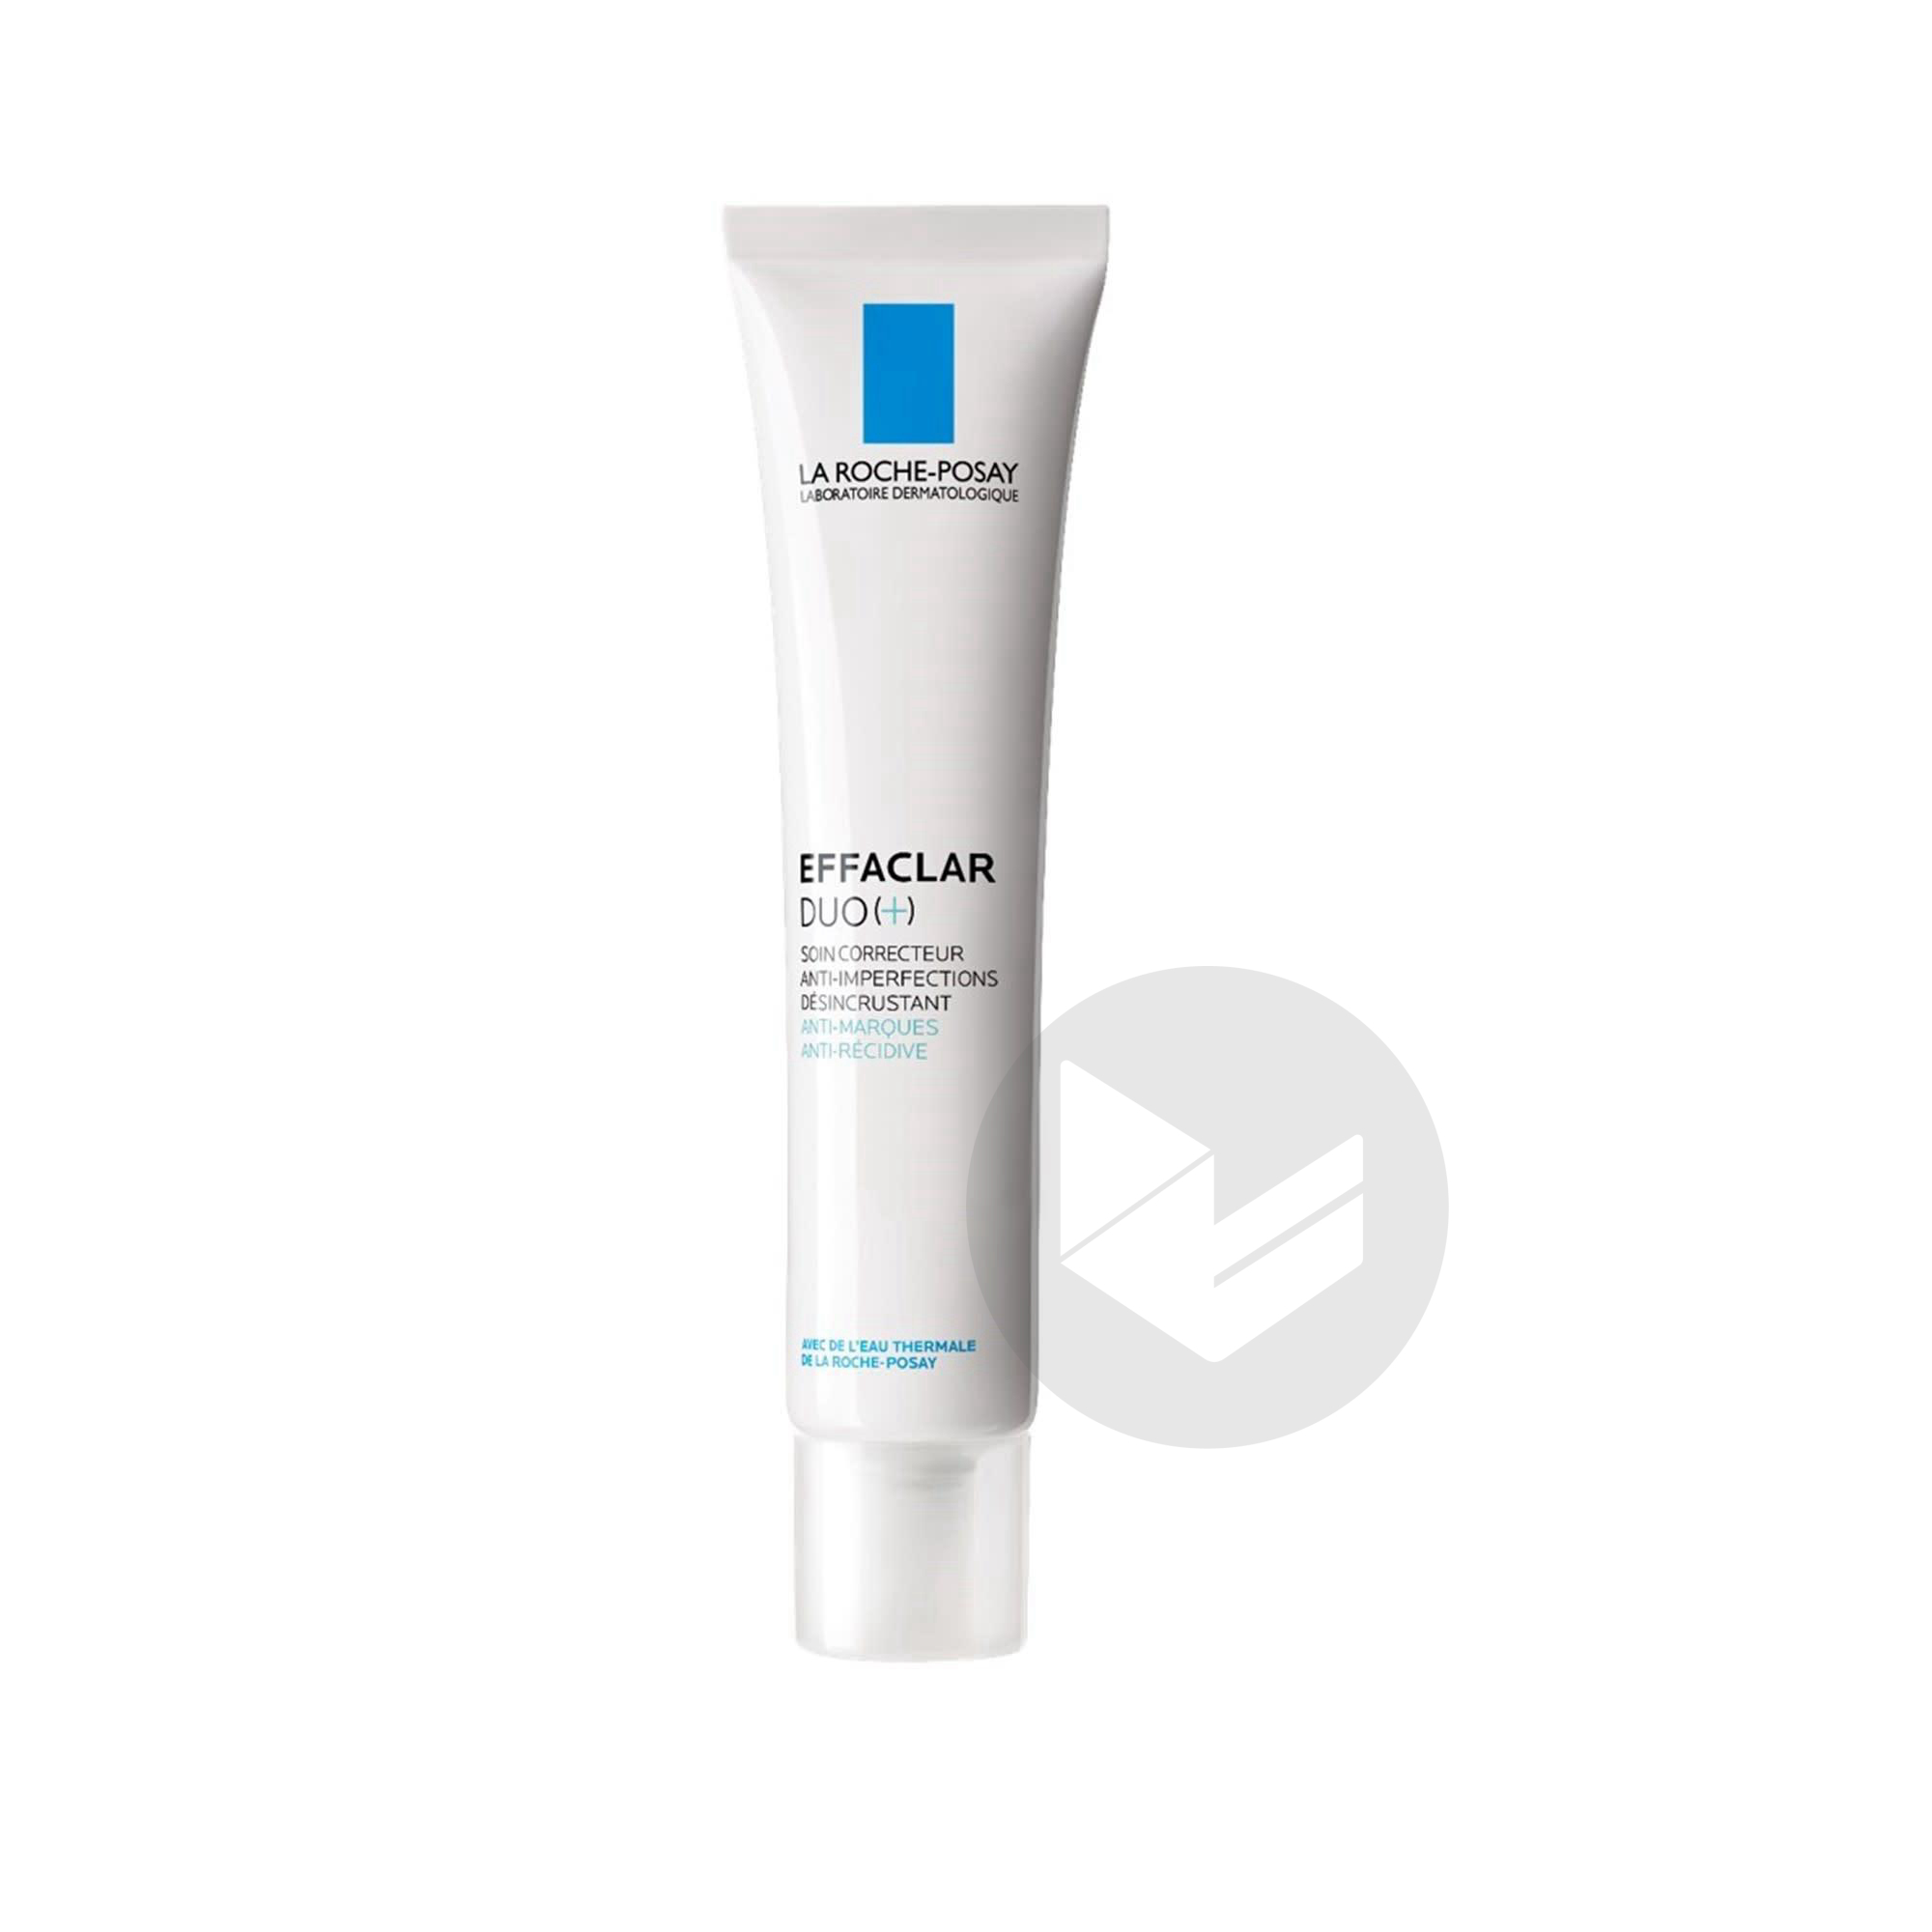 Effaclar Duo Soin Correcteur Anti Imperfections Desincrustant Anti Marques Et Anti Recidive 40 Ml